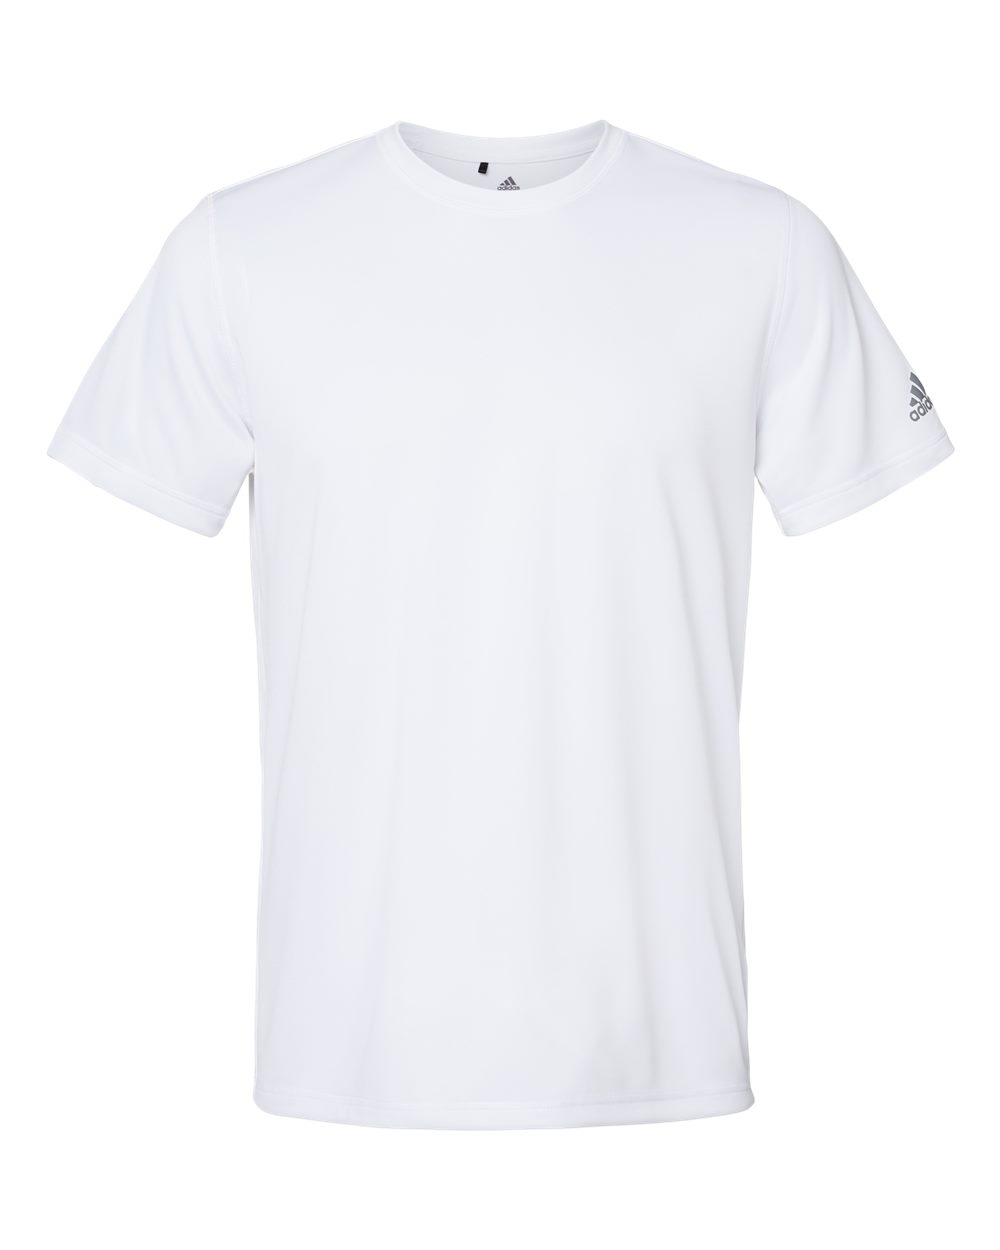 Adidas-Mens-Blank-Short-Sleeve-Polyester-Sport-T-Shirt-A376-up-to-4XL miniature 36